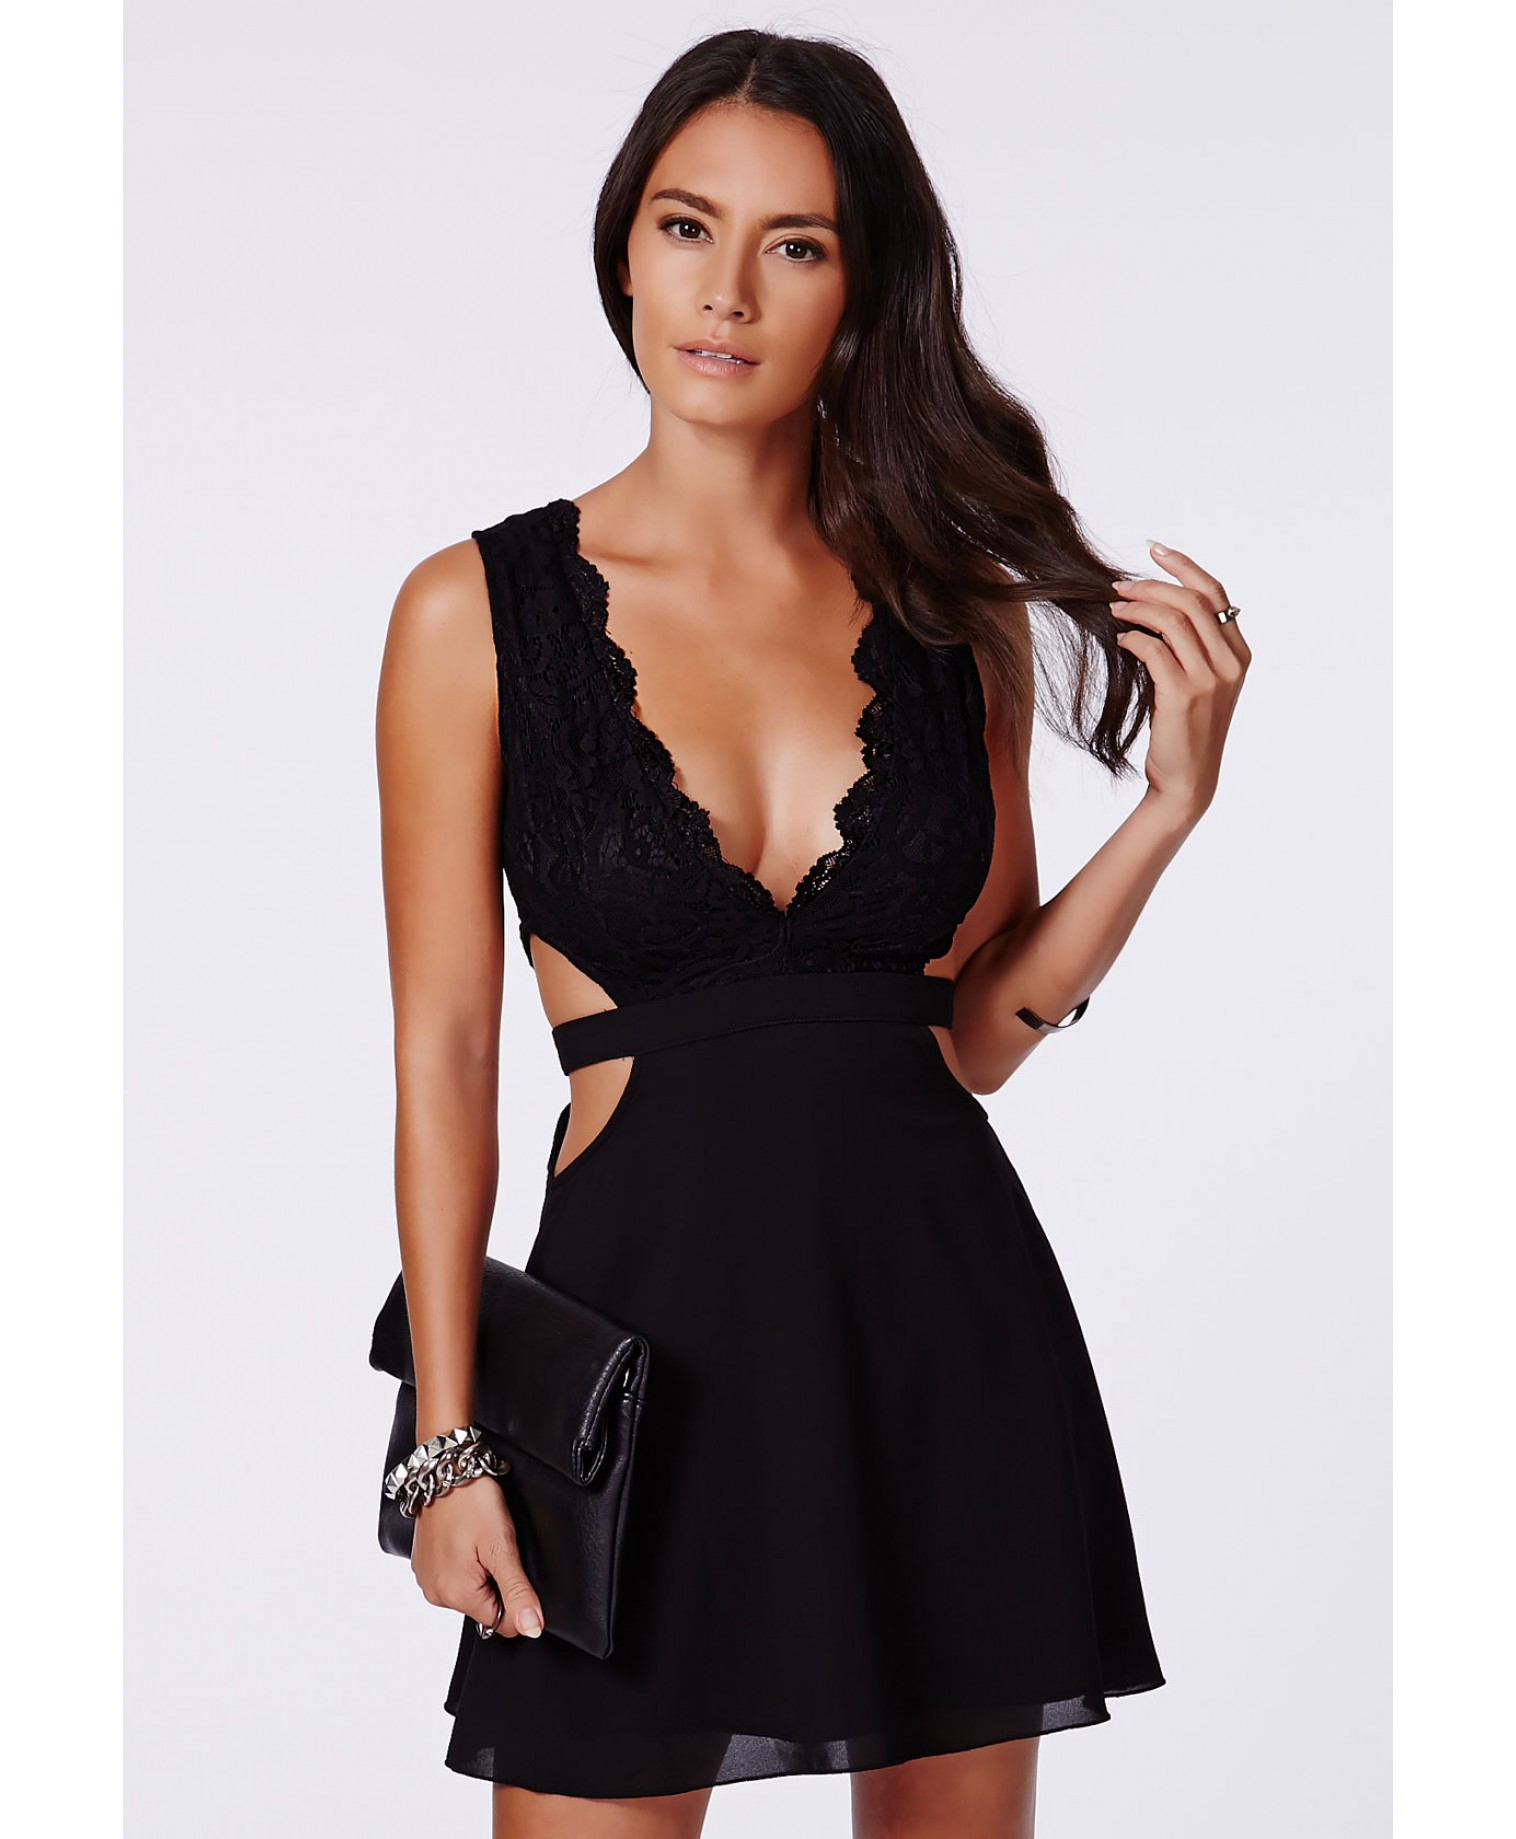 bc665ff886 Lyst - Missguided Roksy Black Lace Plunge Cut Out Dress in Black